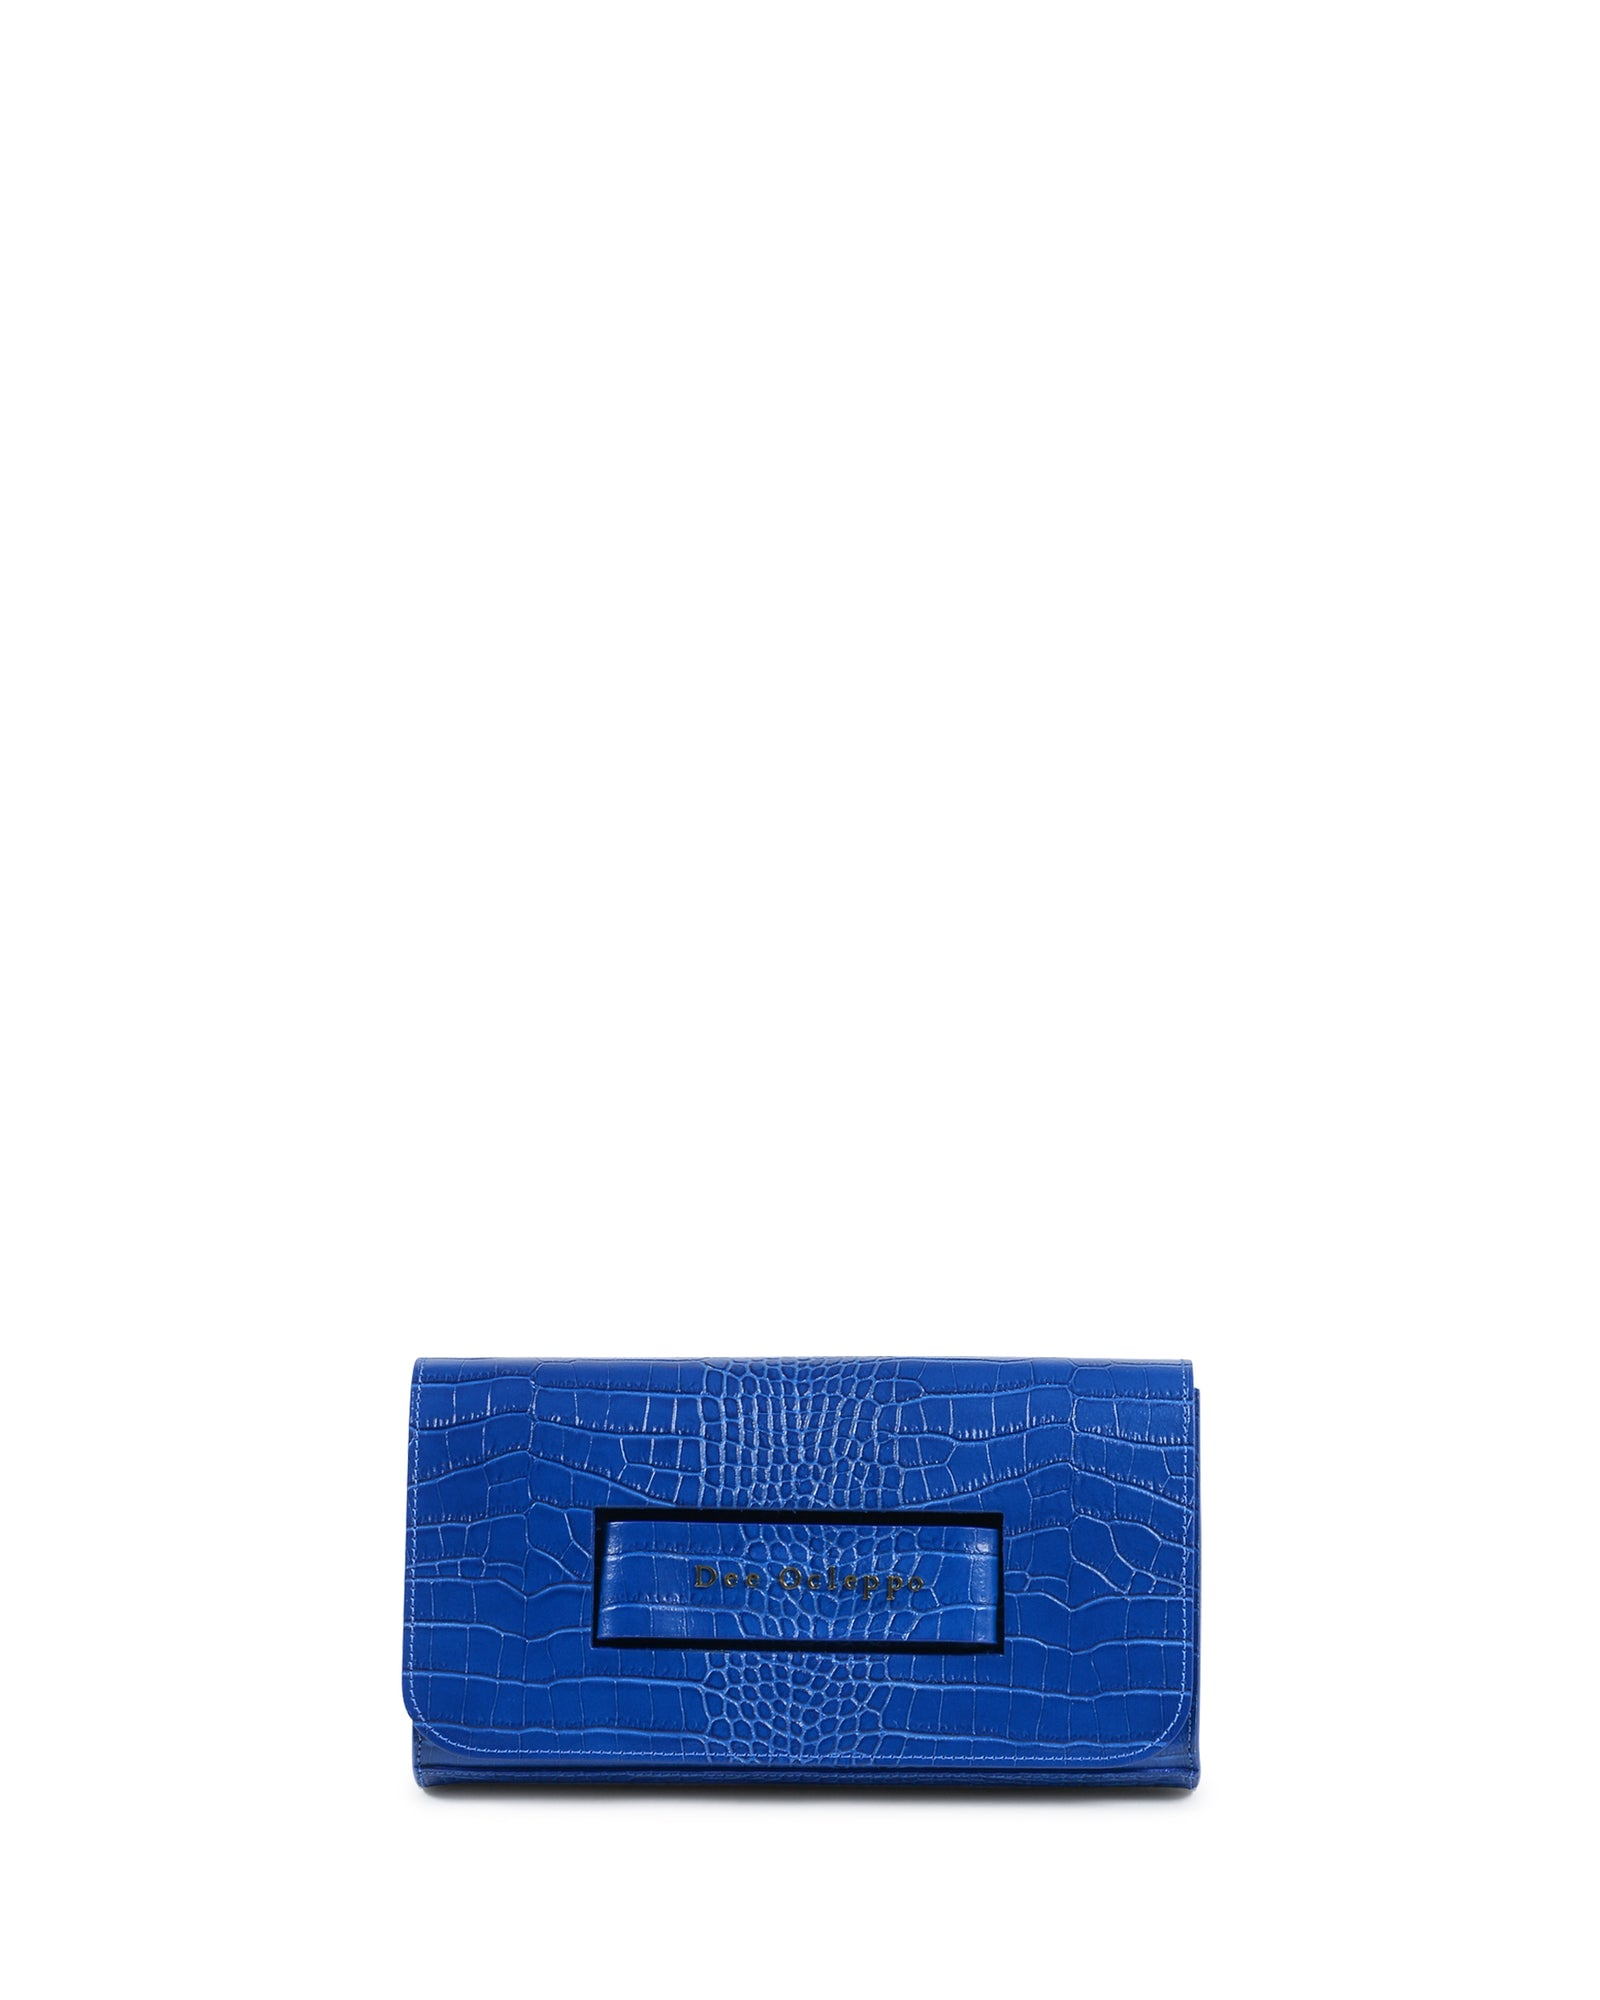 The Everything Clutch Blue